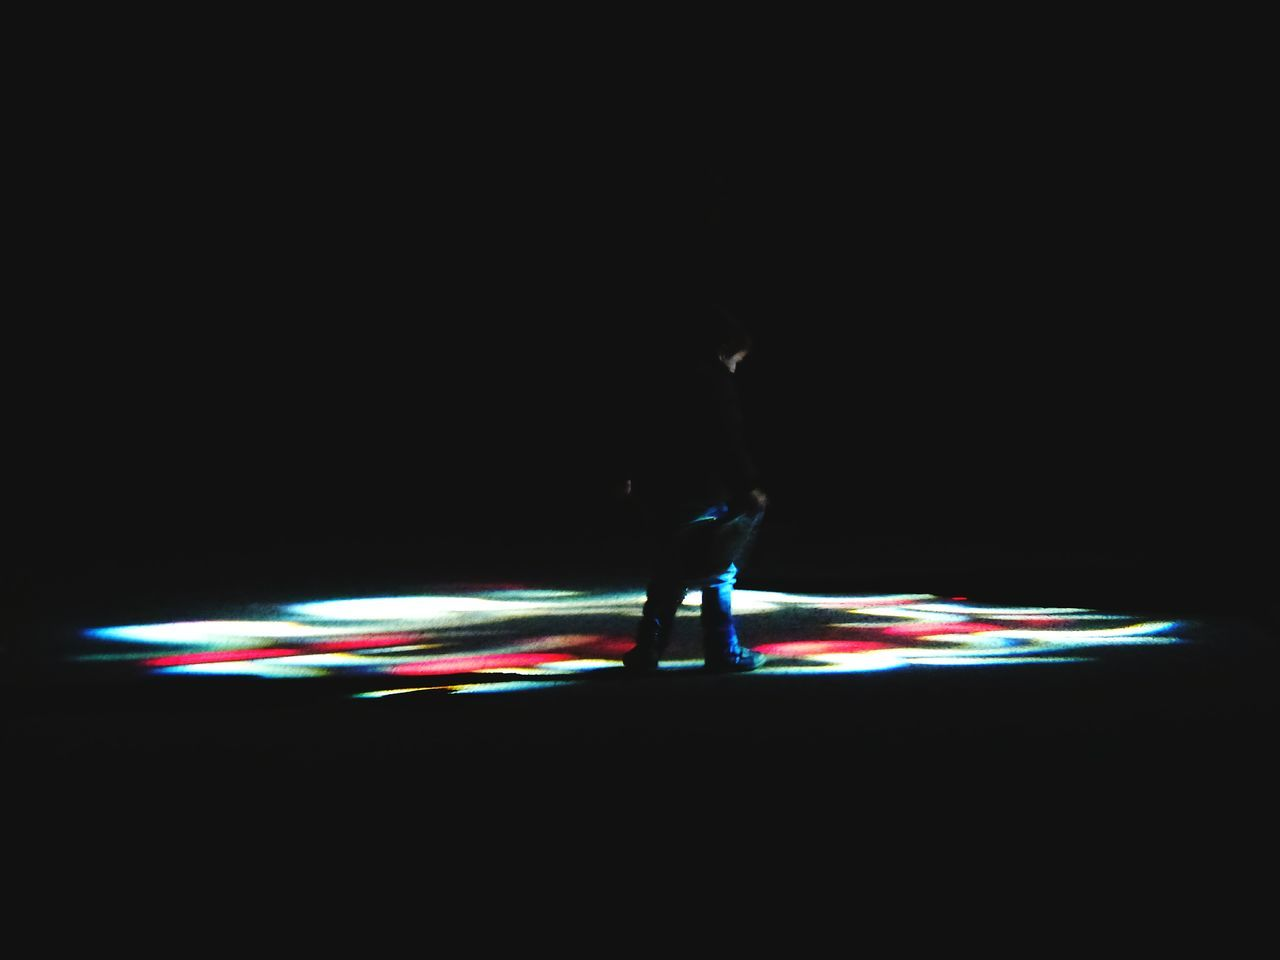 Lights Children Child Lights Fascinating Interested Beautiful Illuminated Black Background Motion Night Outdoors Winter Futuristic Patterns Cool Technology People Scotland Toddler  Happy Cute Joy Boys Deep In Thought Thinking Kid